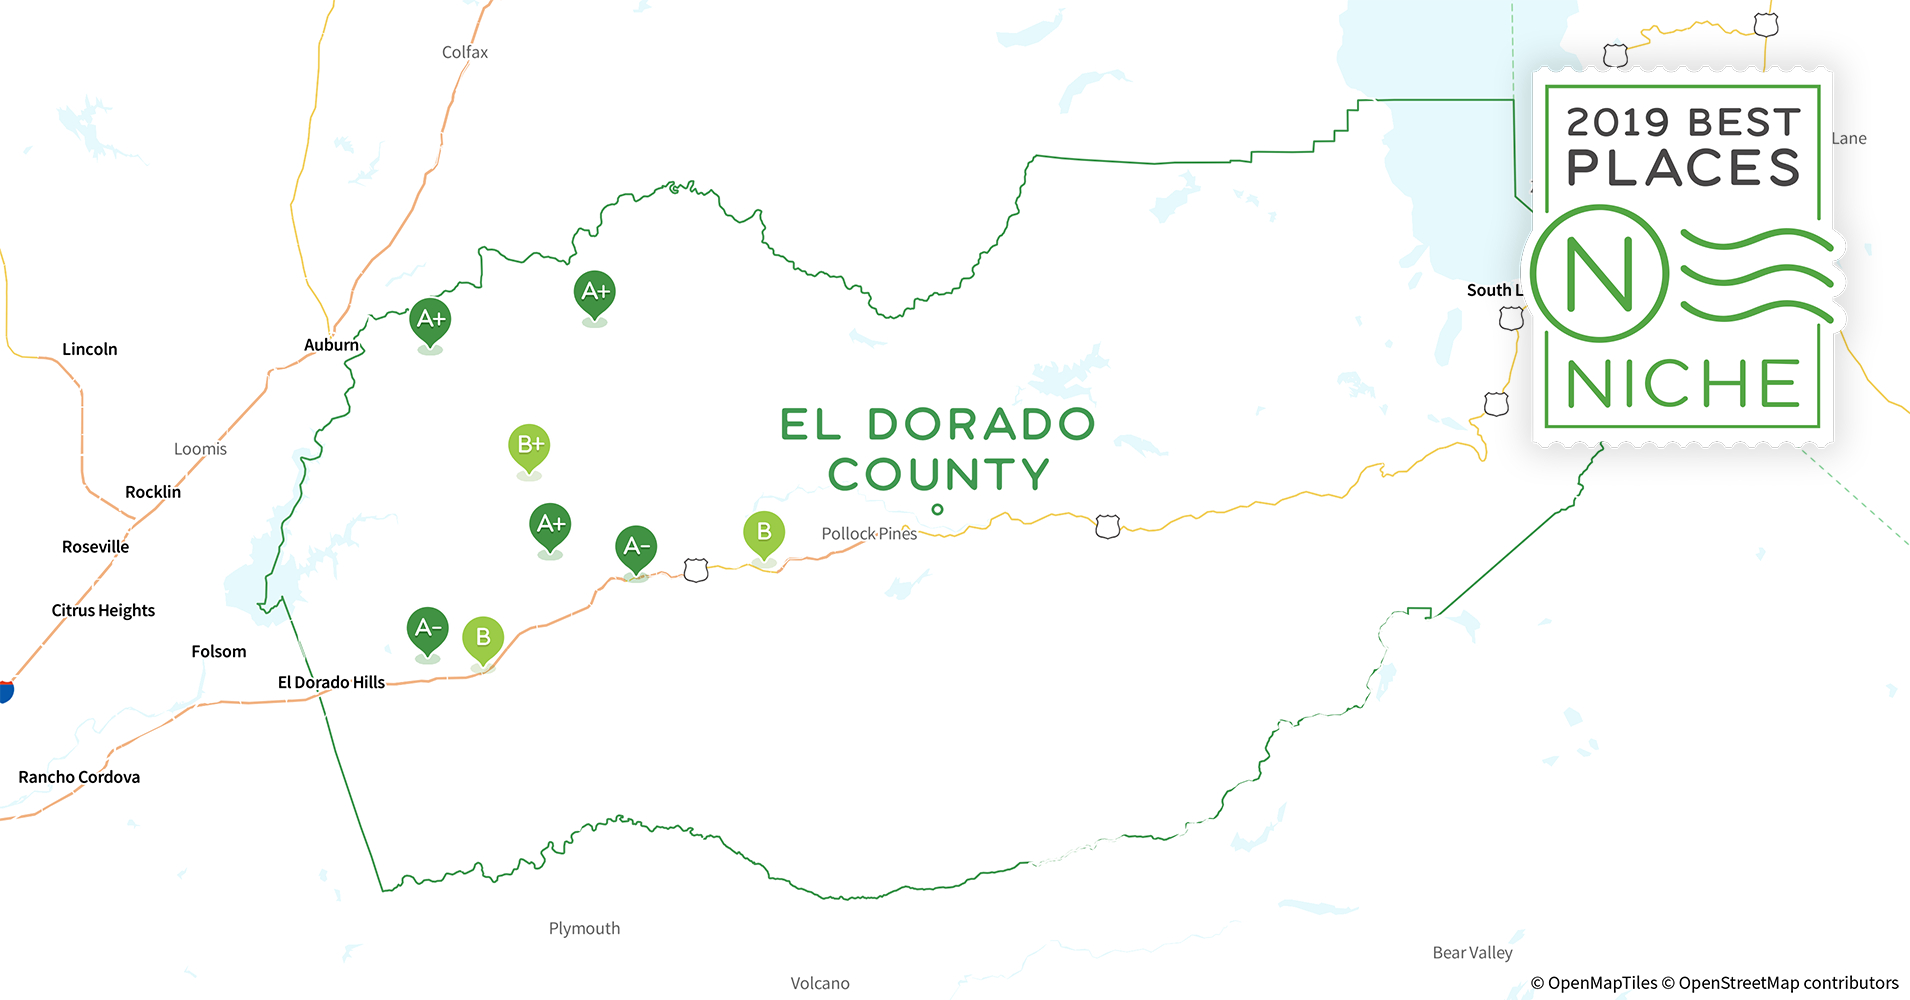 2019 Best Places To Live In El Dorado County, Ca - Niche - El Dorado County California Parcel Maps